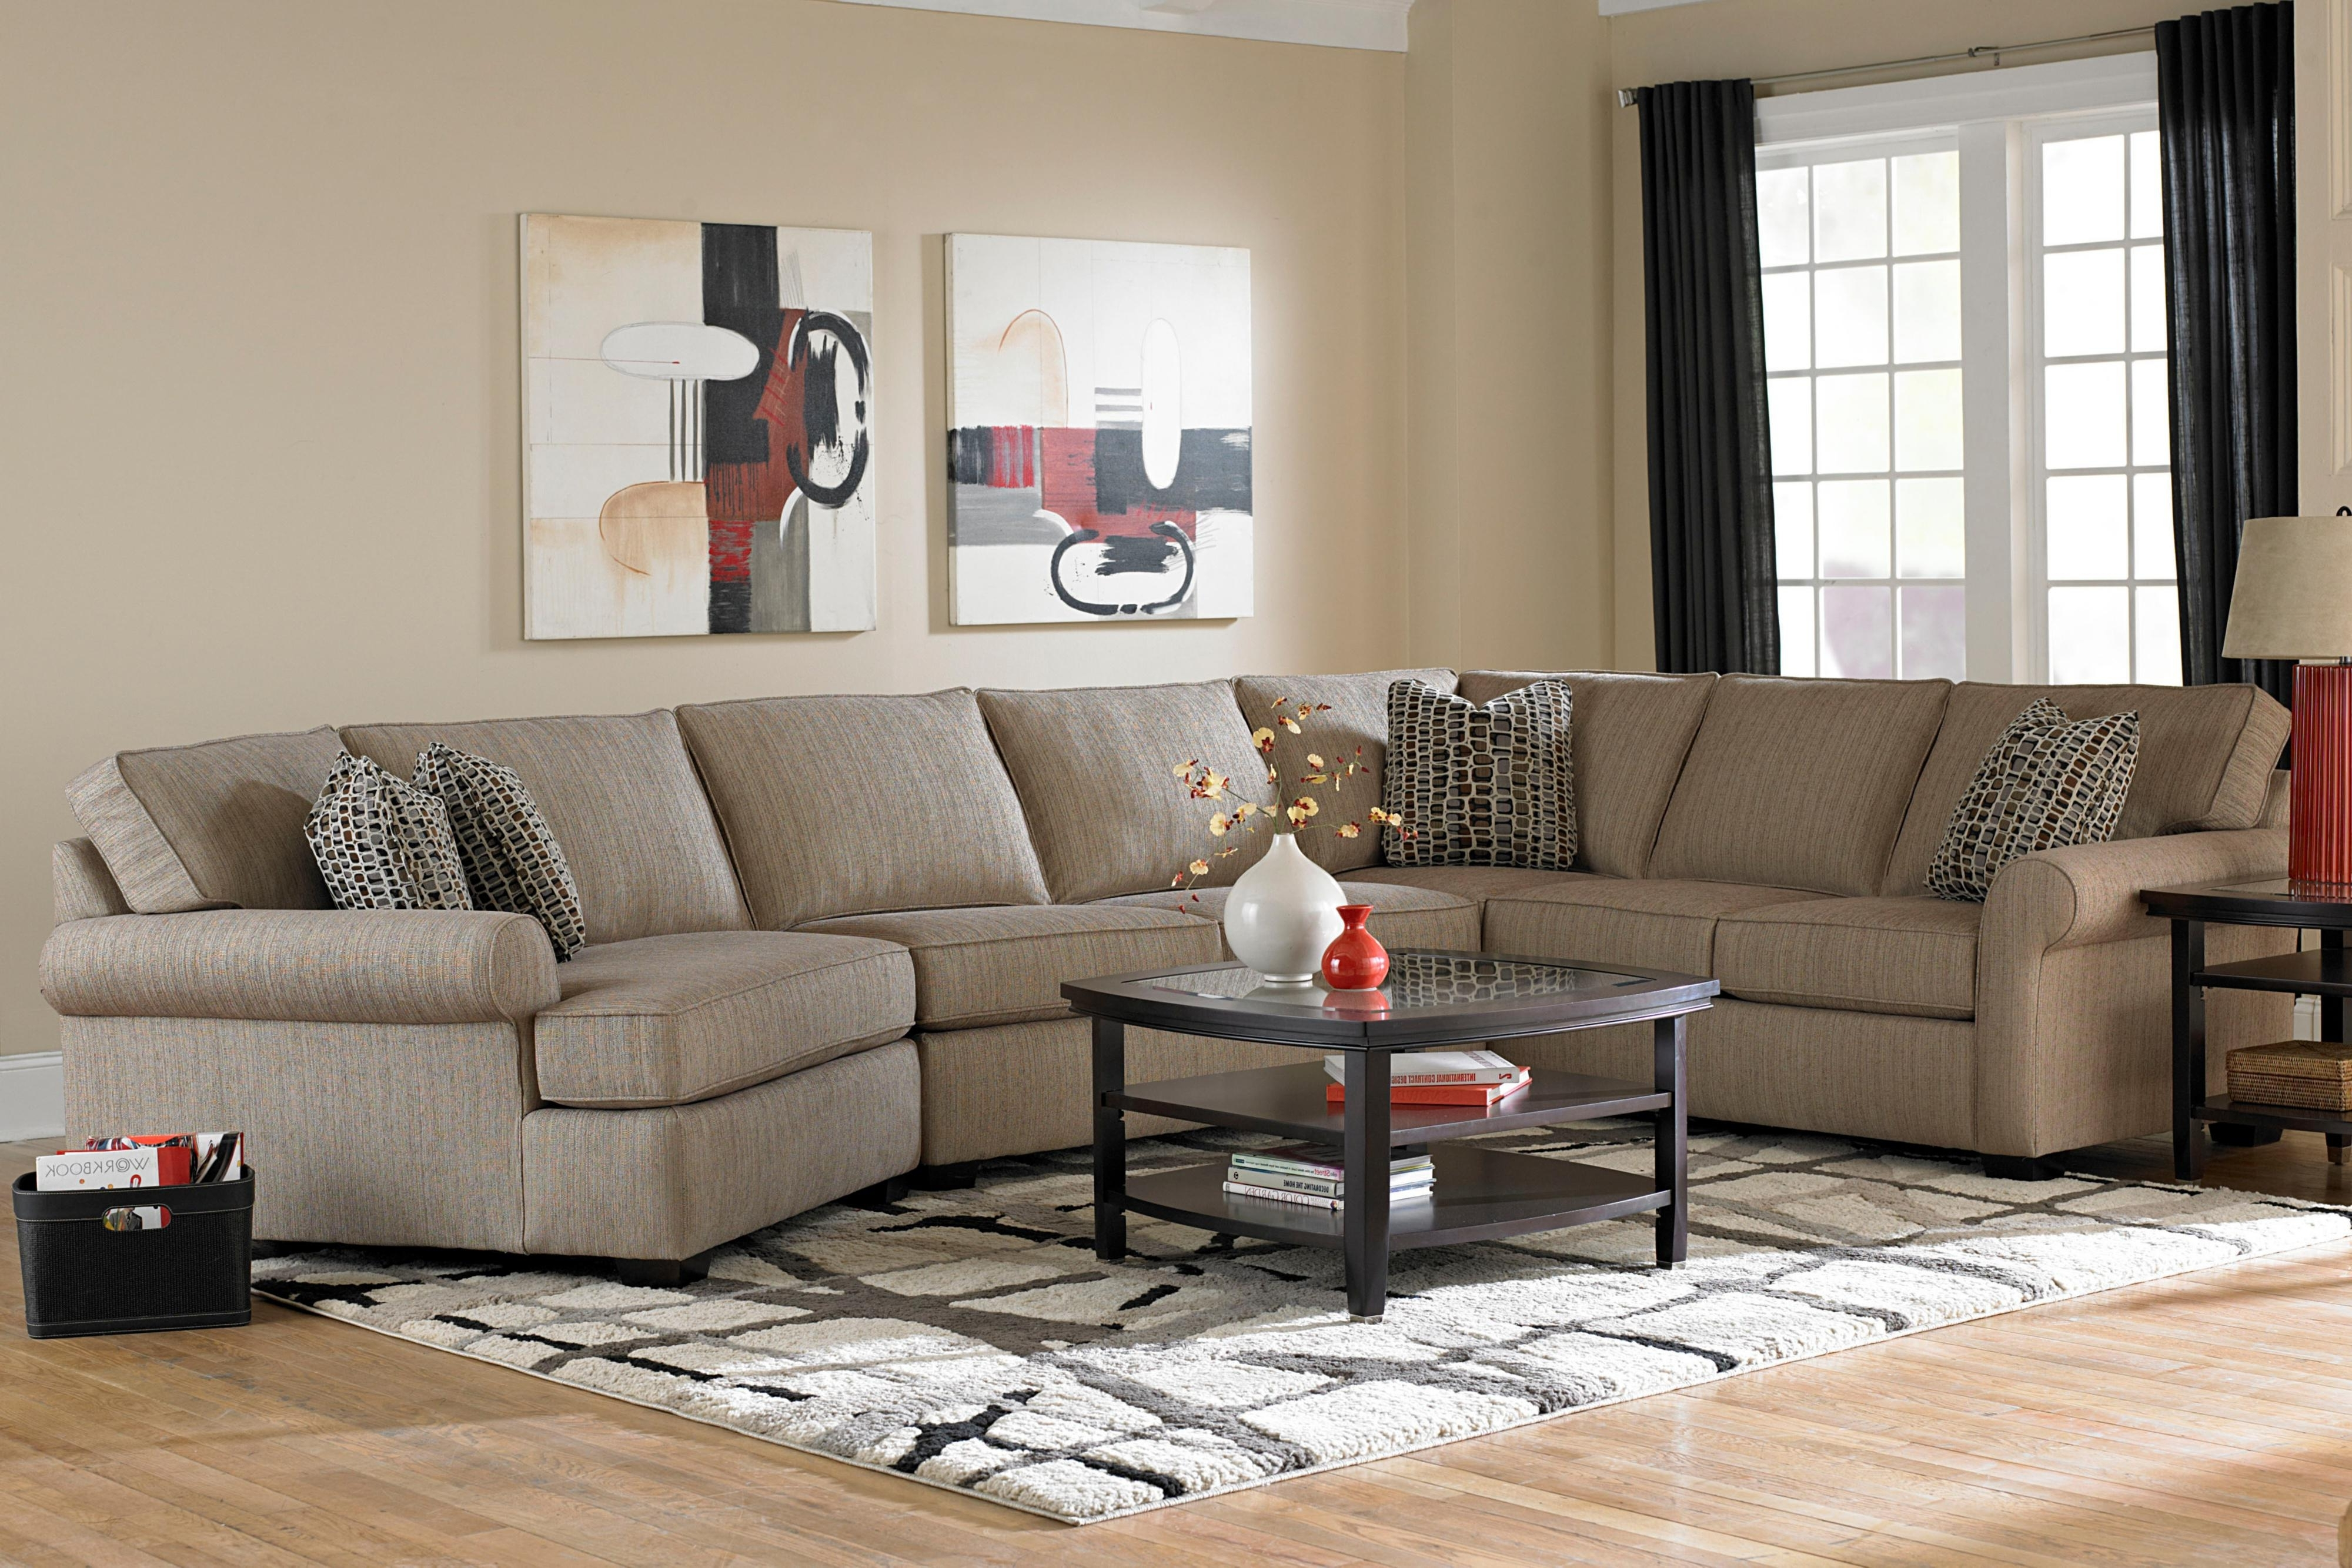 Virginia Sectional Sofas Within Preferred Broyhill Furniture Ethan Transitional Sectional Sofa With Right (View 12 of 15)